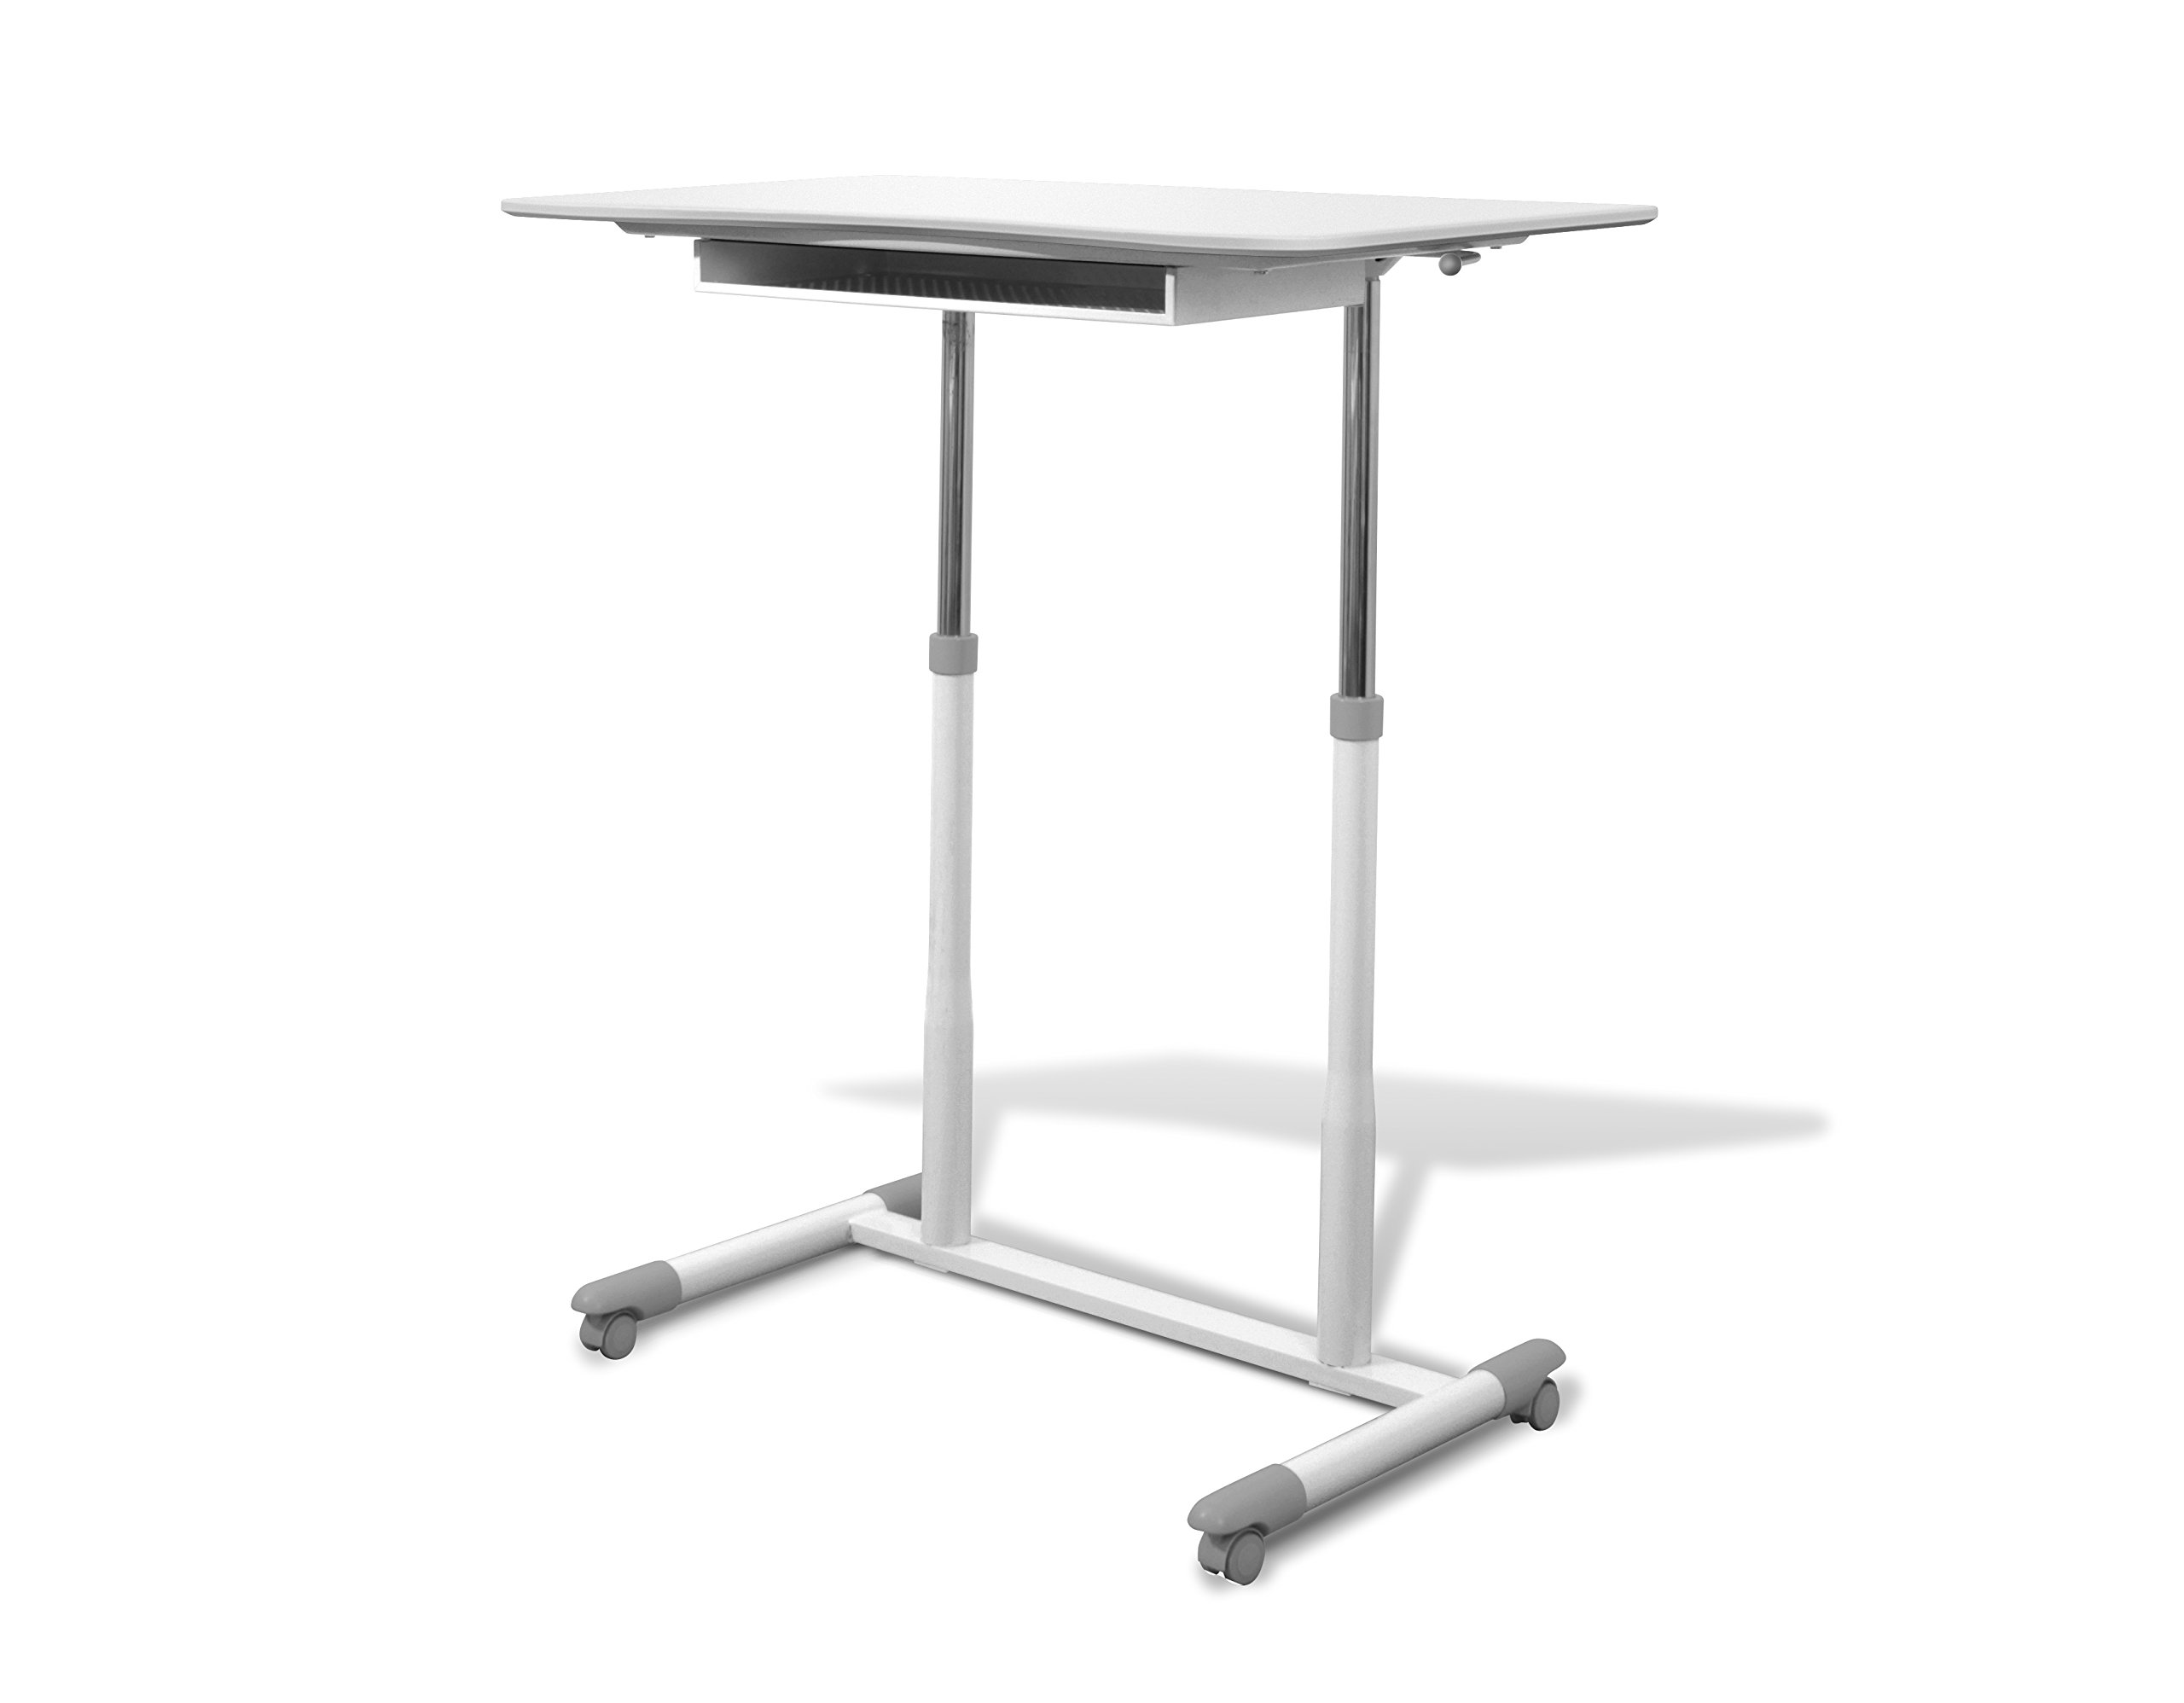 Unique Furniture 205-WH Height Adjustable Sit Stand Desk with White Top by Unique Furniture